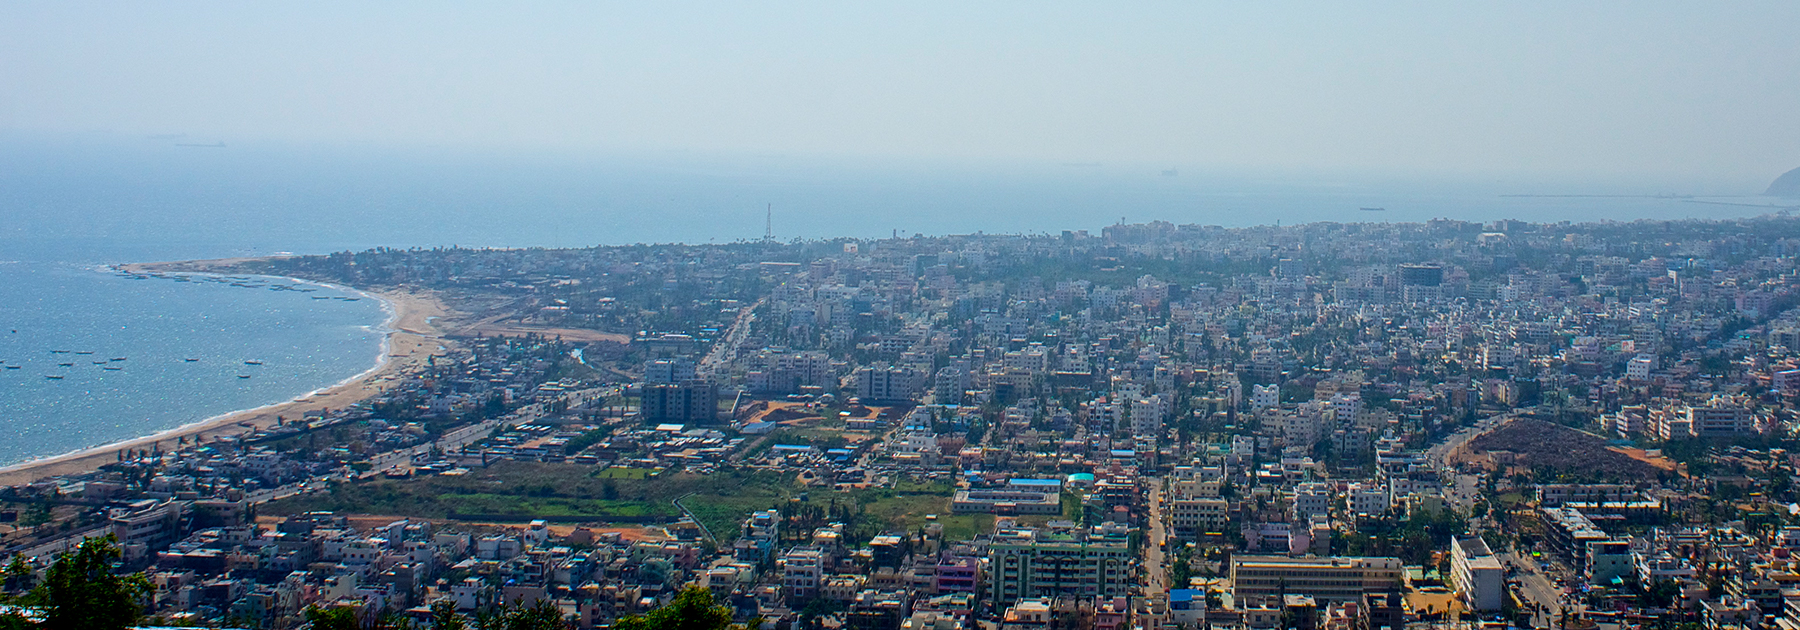 A view of Visakhapatnam from the city's Kailasagiri Park (Av9, licensed under CC BY-SA 4.0)